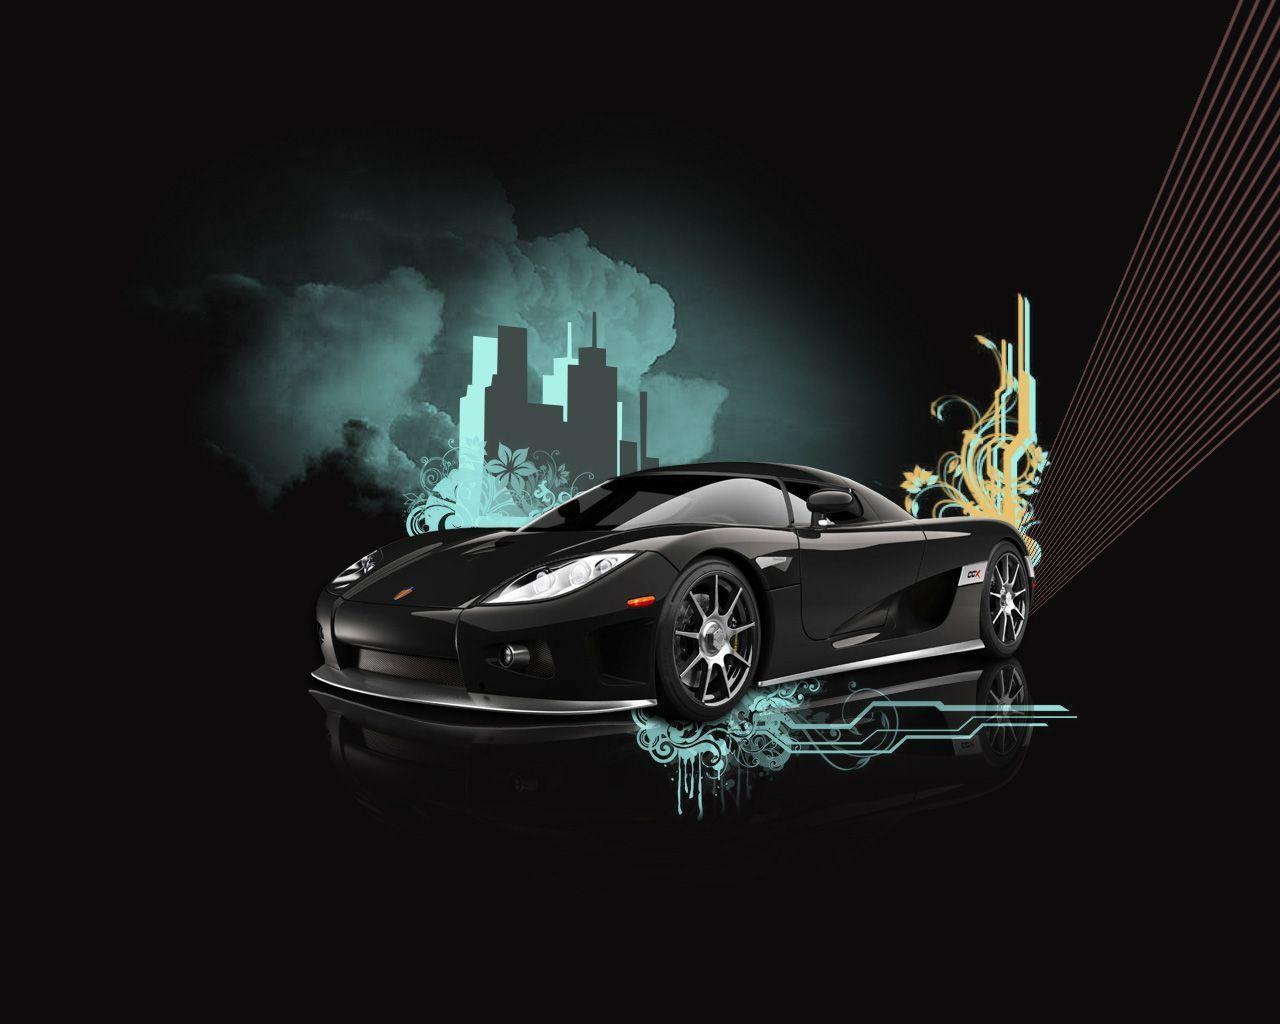 Desktop Wallpapers Motors Cars Koenigsegg Ccxr Free